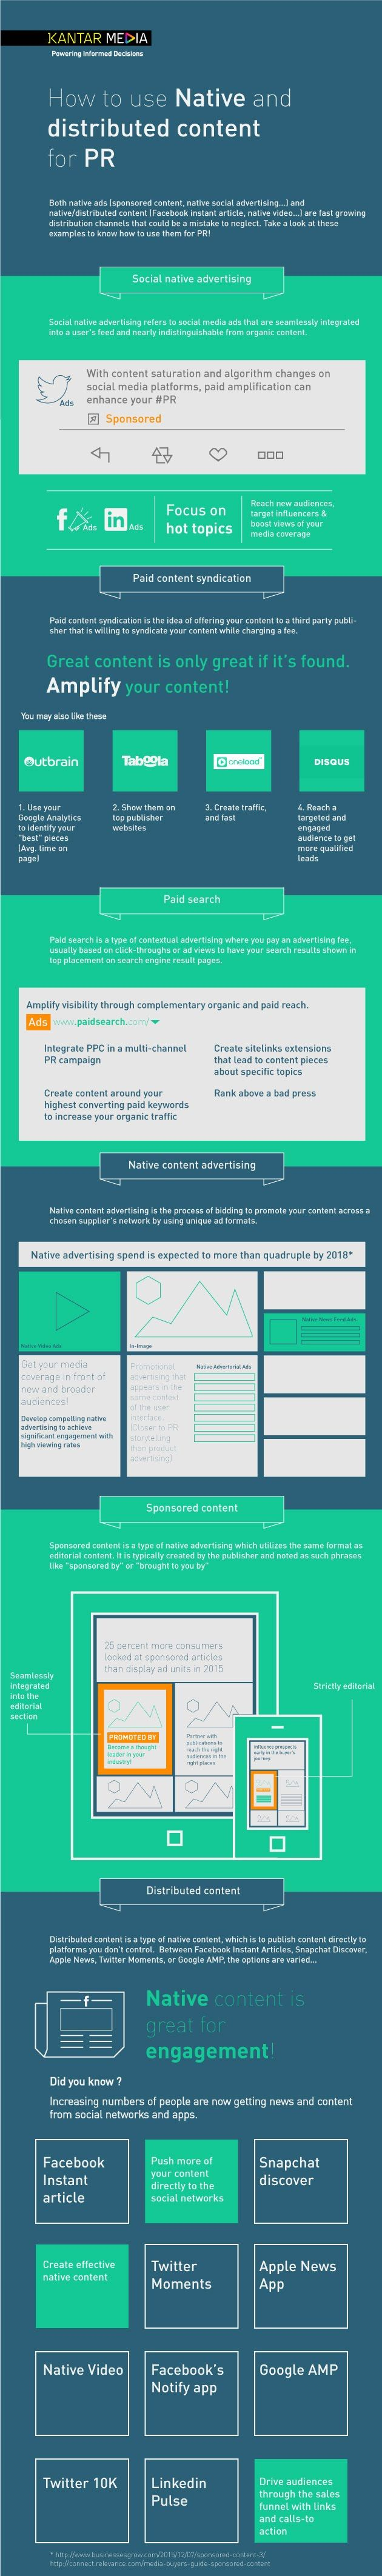 6 Content Distribution Strategies You Could Be Overlooking - #infographic